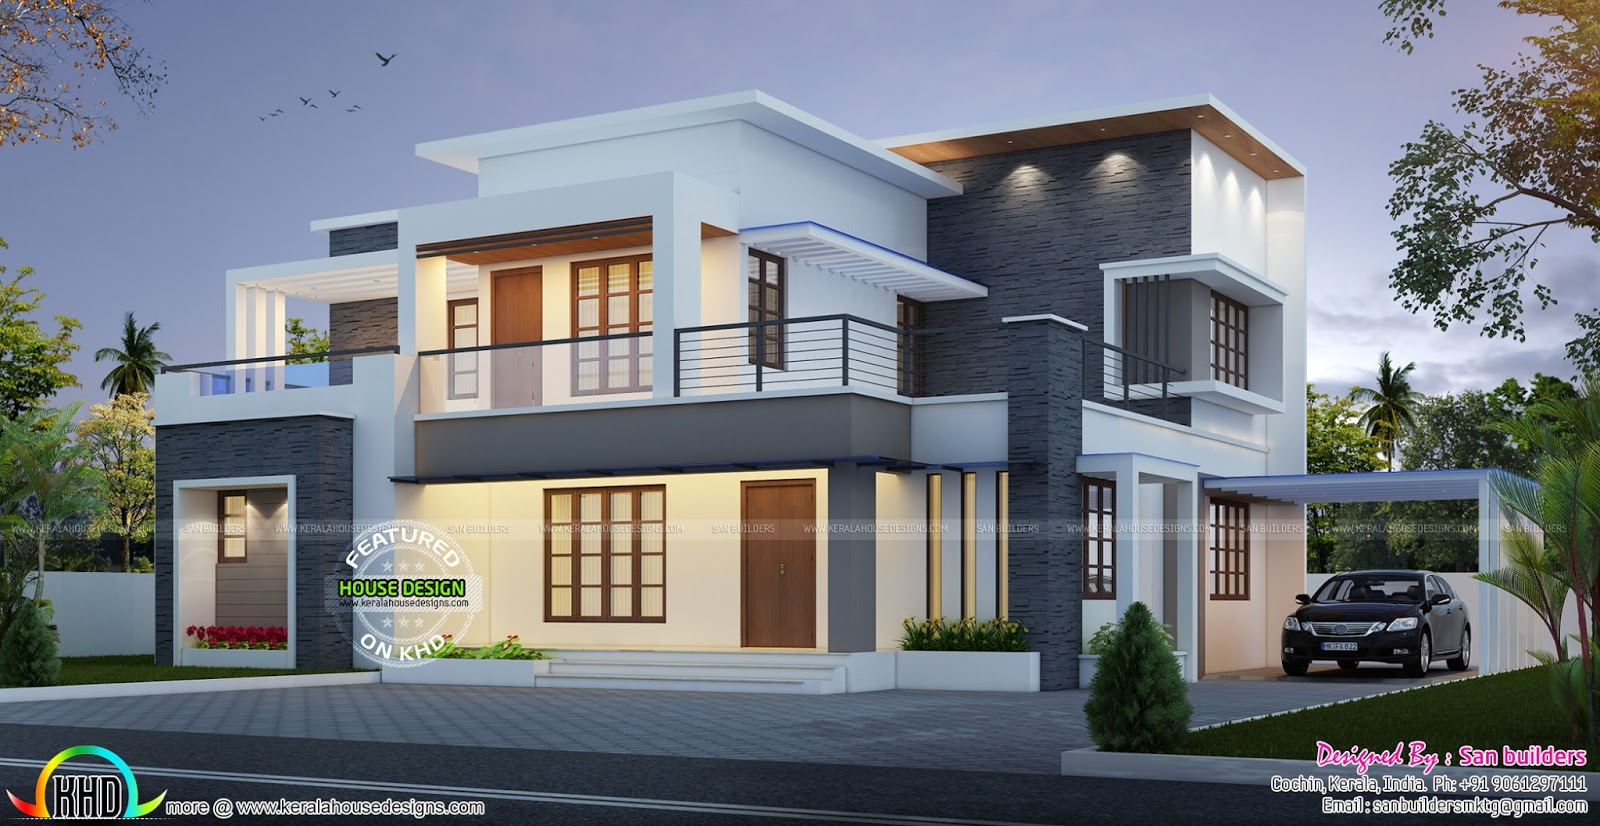 Ground Floor Modern Elevation : House plan and elevation by san builders kerala home